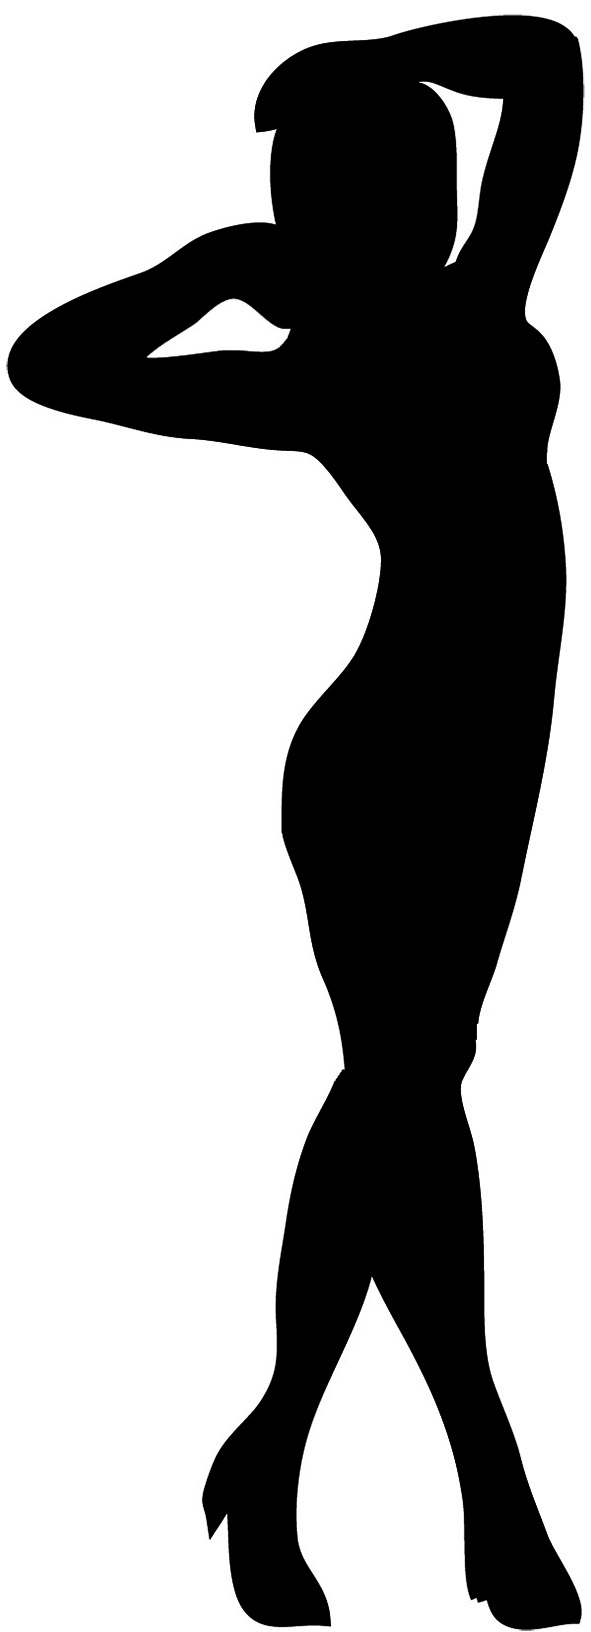 pin up silhouette pin up silhouette at getdrawings free download up pin silhouette